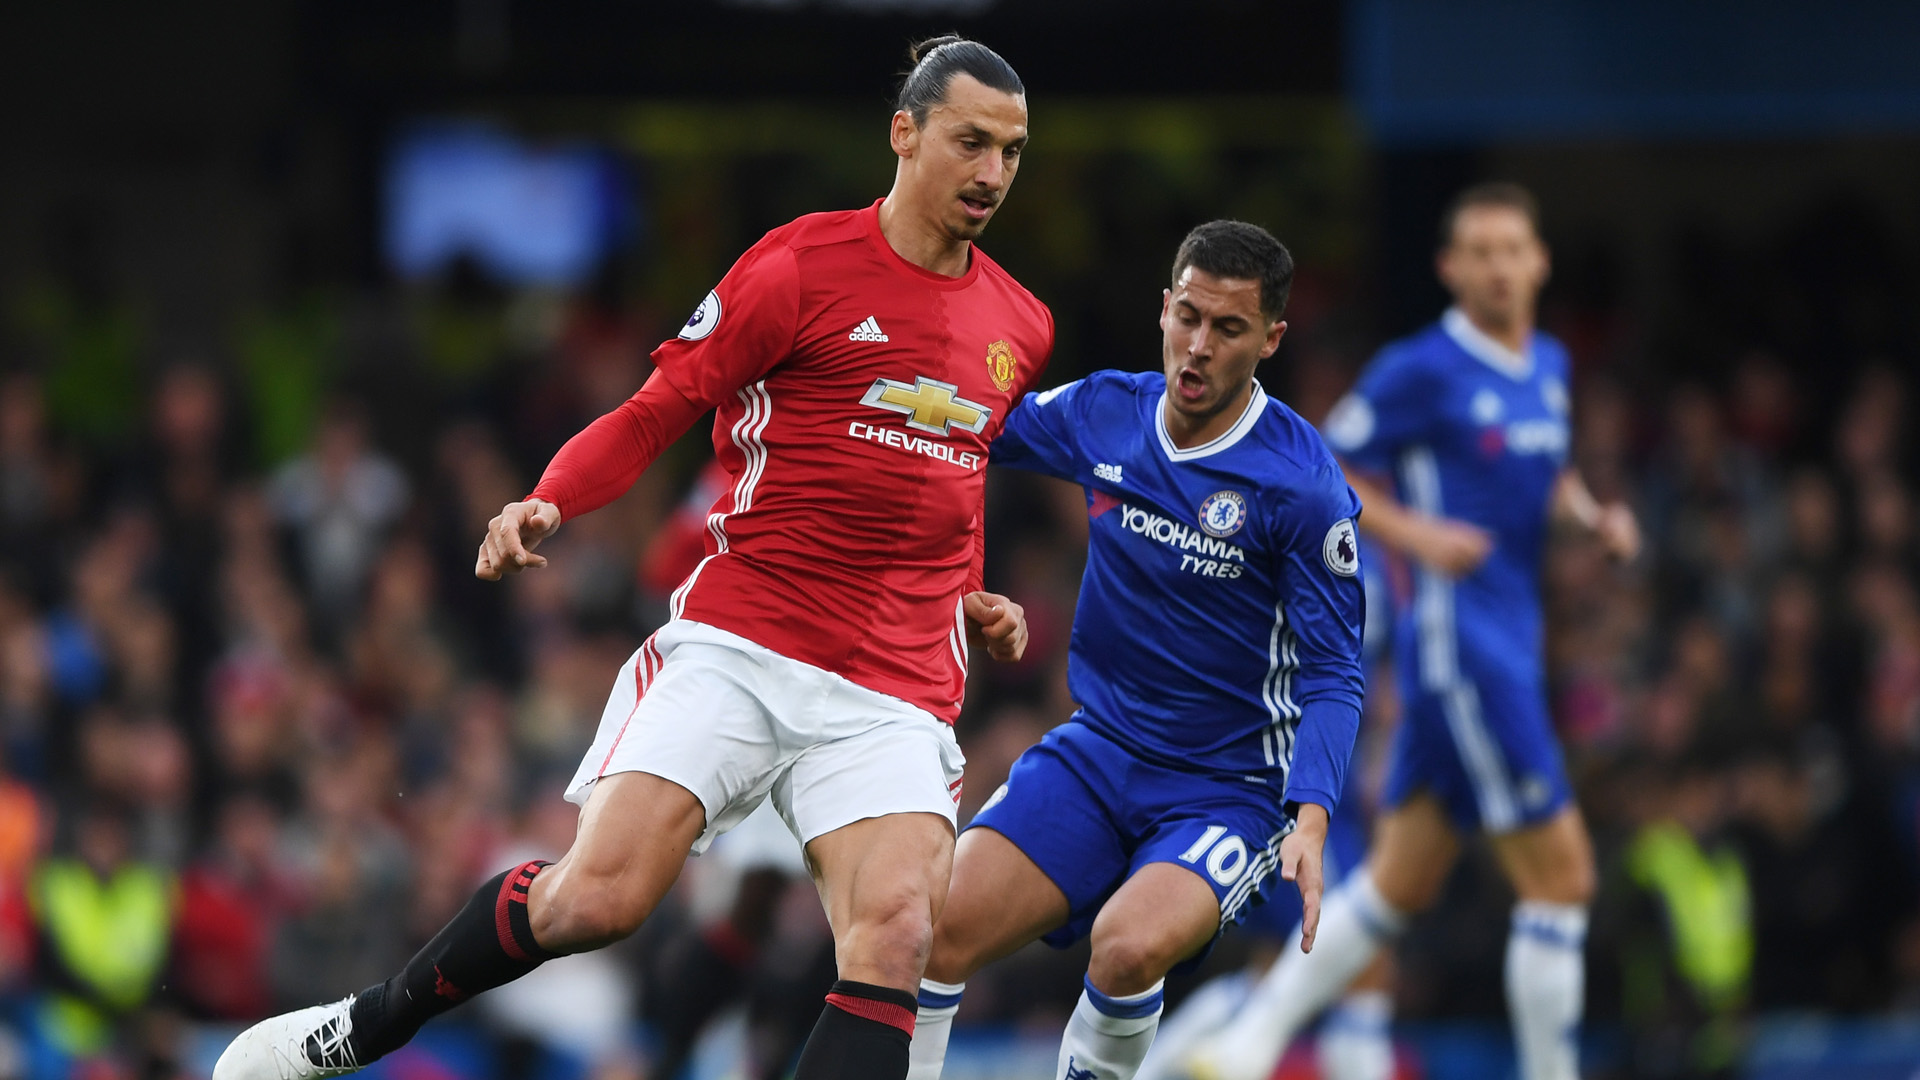 Ibrahimovic Hazard Manchester United Chelsea Premier League 2016